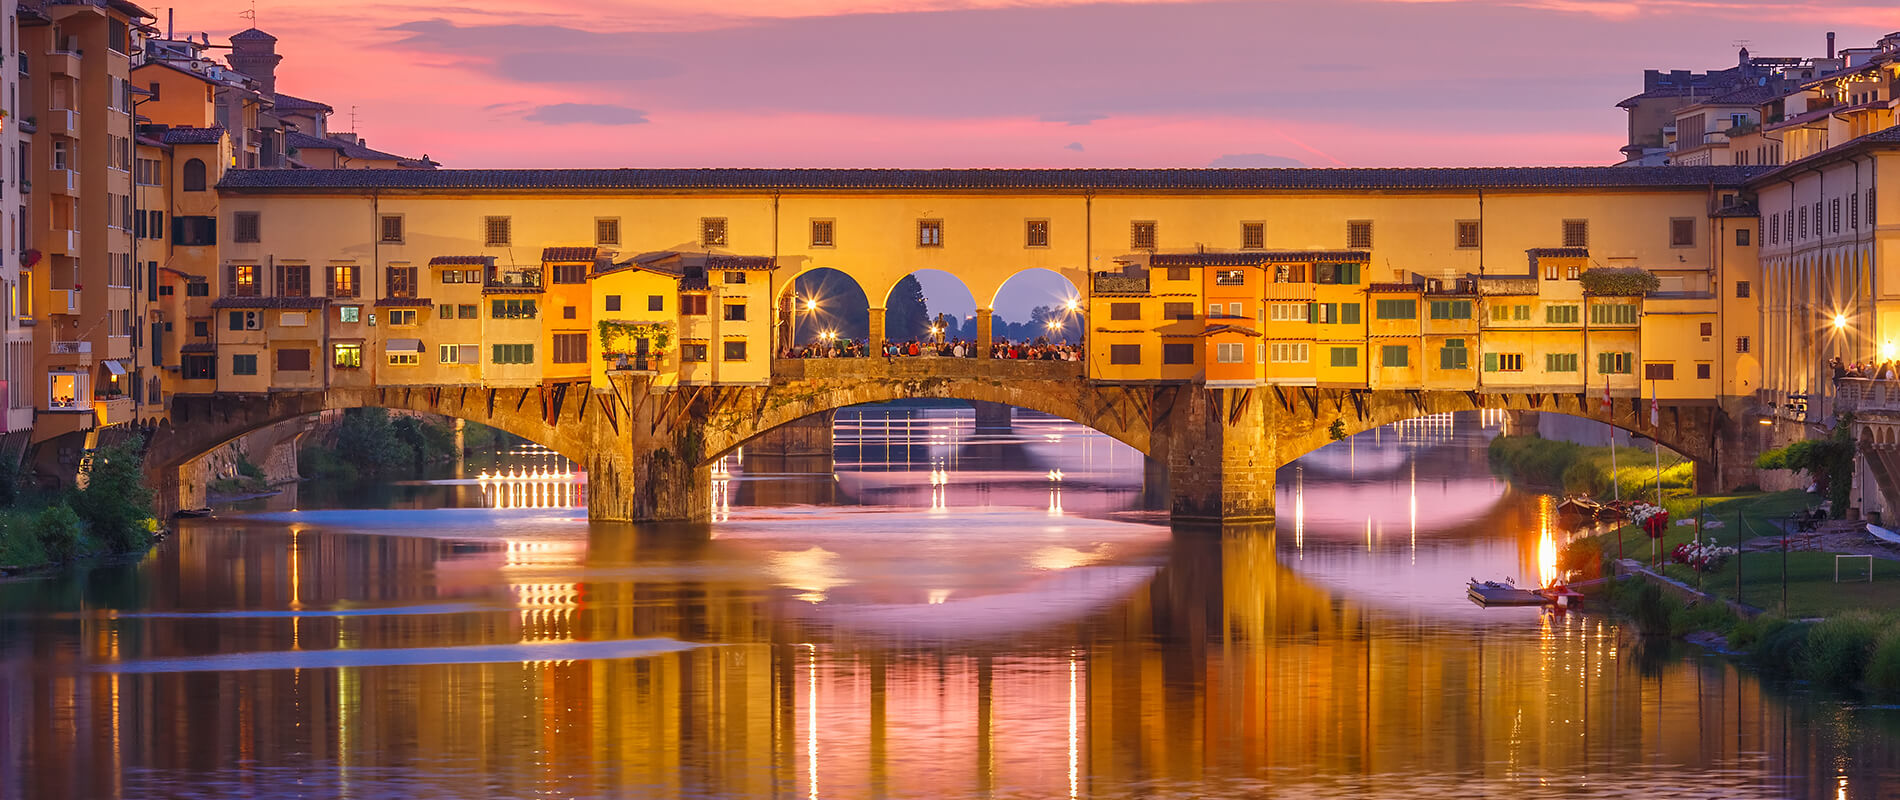 Ponte Vecchio, the oldest stone bridge in Europe